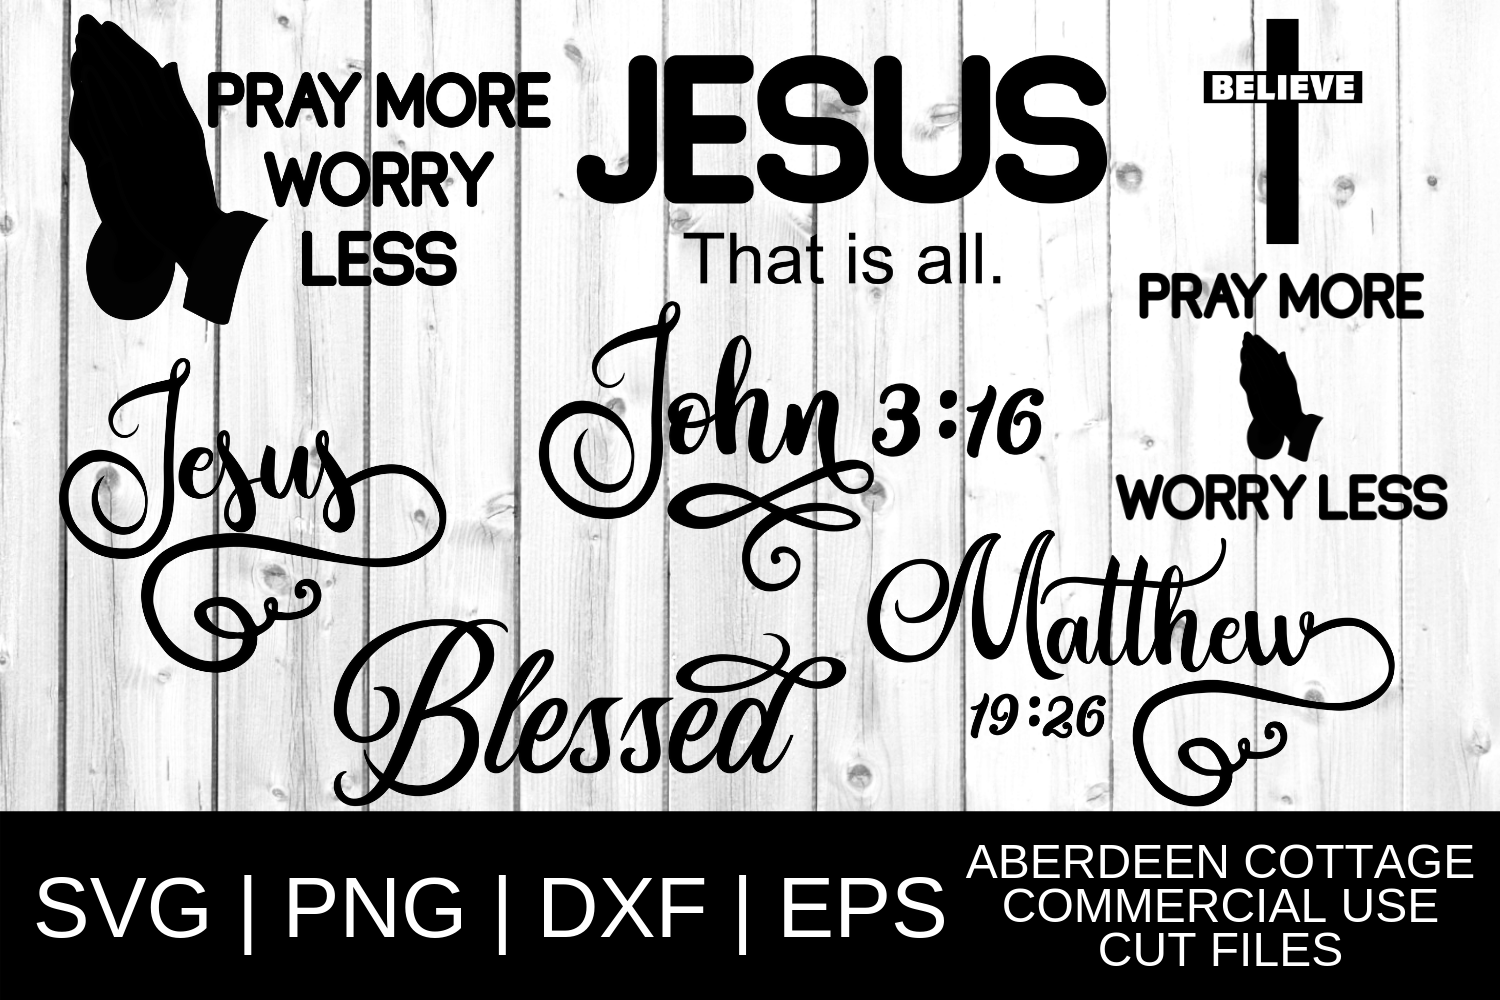 Download Free Christian Designs Mini Bundle Svg Graphic By Aberdeencottage for Cricut Explore, Silhouette and other cutting machines.